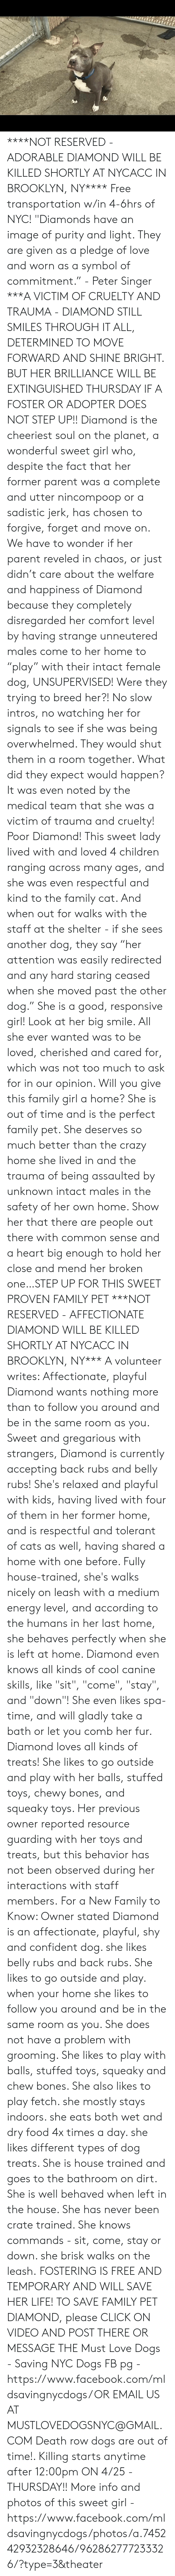 """Bones, Cats, and Children: ****NOT RESERVED - ADORABLE DIAMOND WILL BE KILLED SHORTLY AT NYCACC IN BROOKLYN, NY**** Free transportation w/in 4-6hrs of NYC!  """"Diamonds have an image of purity and light. They are given as a pledge of love and worn as a symbol of commitment."""" -  Peter Singer ***A VICTIM OF CRUELTY AND TRAUMA - DIAMOND STILL SMILES THROUGH IT ALL, DETERMINED TO MOVE FORWARD AND SHINE BRIGHT. BUT HER BRILLIANCE WILL BE EXTINGUISHED THURSDAY IF A FOSTER OR ADOPTER DOES NOT STEP UP!!  Diamond is the cheeriest soul on the planet, a wonderful sweet girl who, despite the fact that her former parent was a complete and utter nincompoop or a sadistic jerk, has chosen to forgive, forget and move on. We have to wonder if her parent reveled in chaos, or just didn't care about the welfare and happiness of Diamond because they completely disregarded her comfort level by having strange unneutered males come to her home to """"play"""" with their intact female dog, UNSUPERVISED!  Were they trying to breed her?! No slow intros, no watching her for signals to see if she was being overwhelmed. They would shut them in a room together. What did they expect would happen? It was even noted by the medical team that she was a victim of trauma and cruelty! Poor Diamond! This sweet lady lived with and loved 4 children ranging across many ages, and she was even respectful and kind to the family cat. And when out for walks with the staff at the shelter - if she sees another dog, they say """"her attention was easily redirected and any hard staring ceased when she moved past the other dog.""""  She is a good, responsive girl! Look at her big smile. All she ever wanted was to be loved, cherished and cared for, which was not too much to ask for in our opinion. Will you give this family girl a home? She is out of time and is the perfect family pet. She deserves so much better than the crazy home she lived in and the trauma of being assaulted by unknown intact males in the safety of her own home.  """